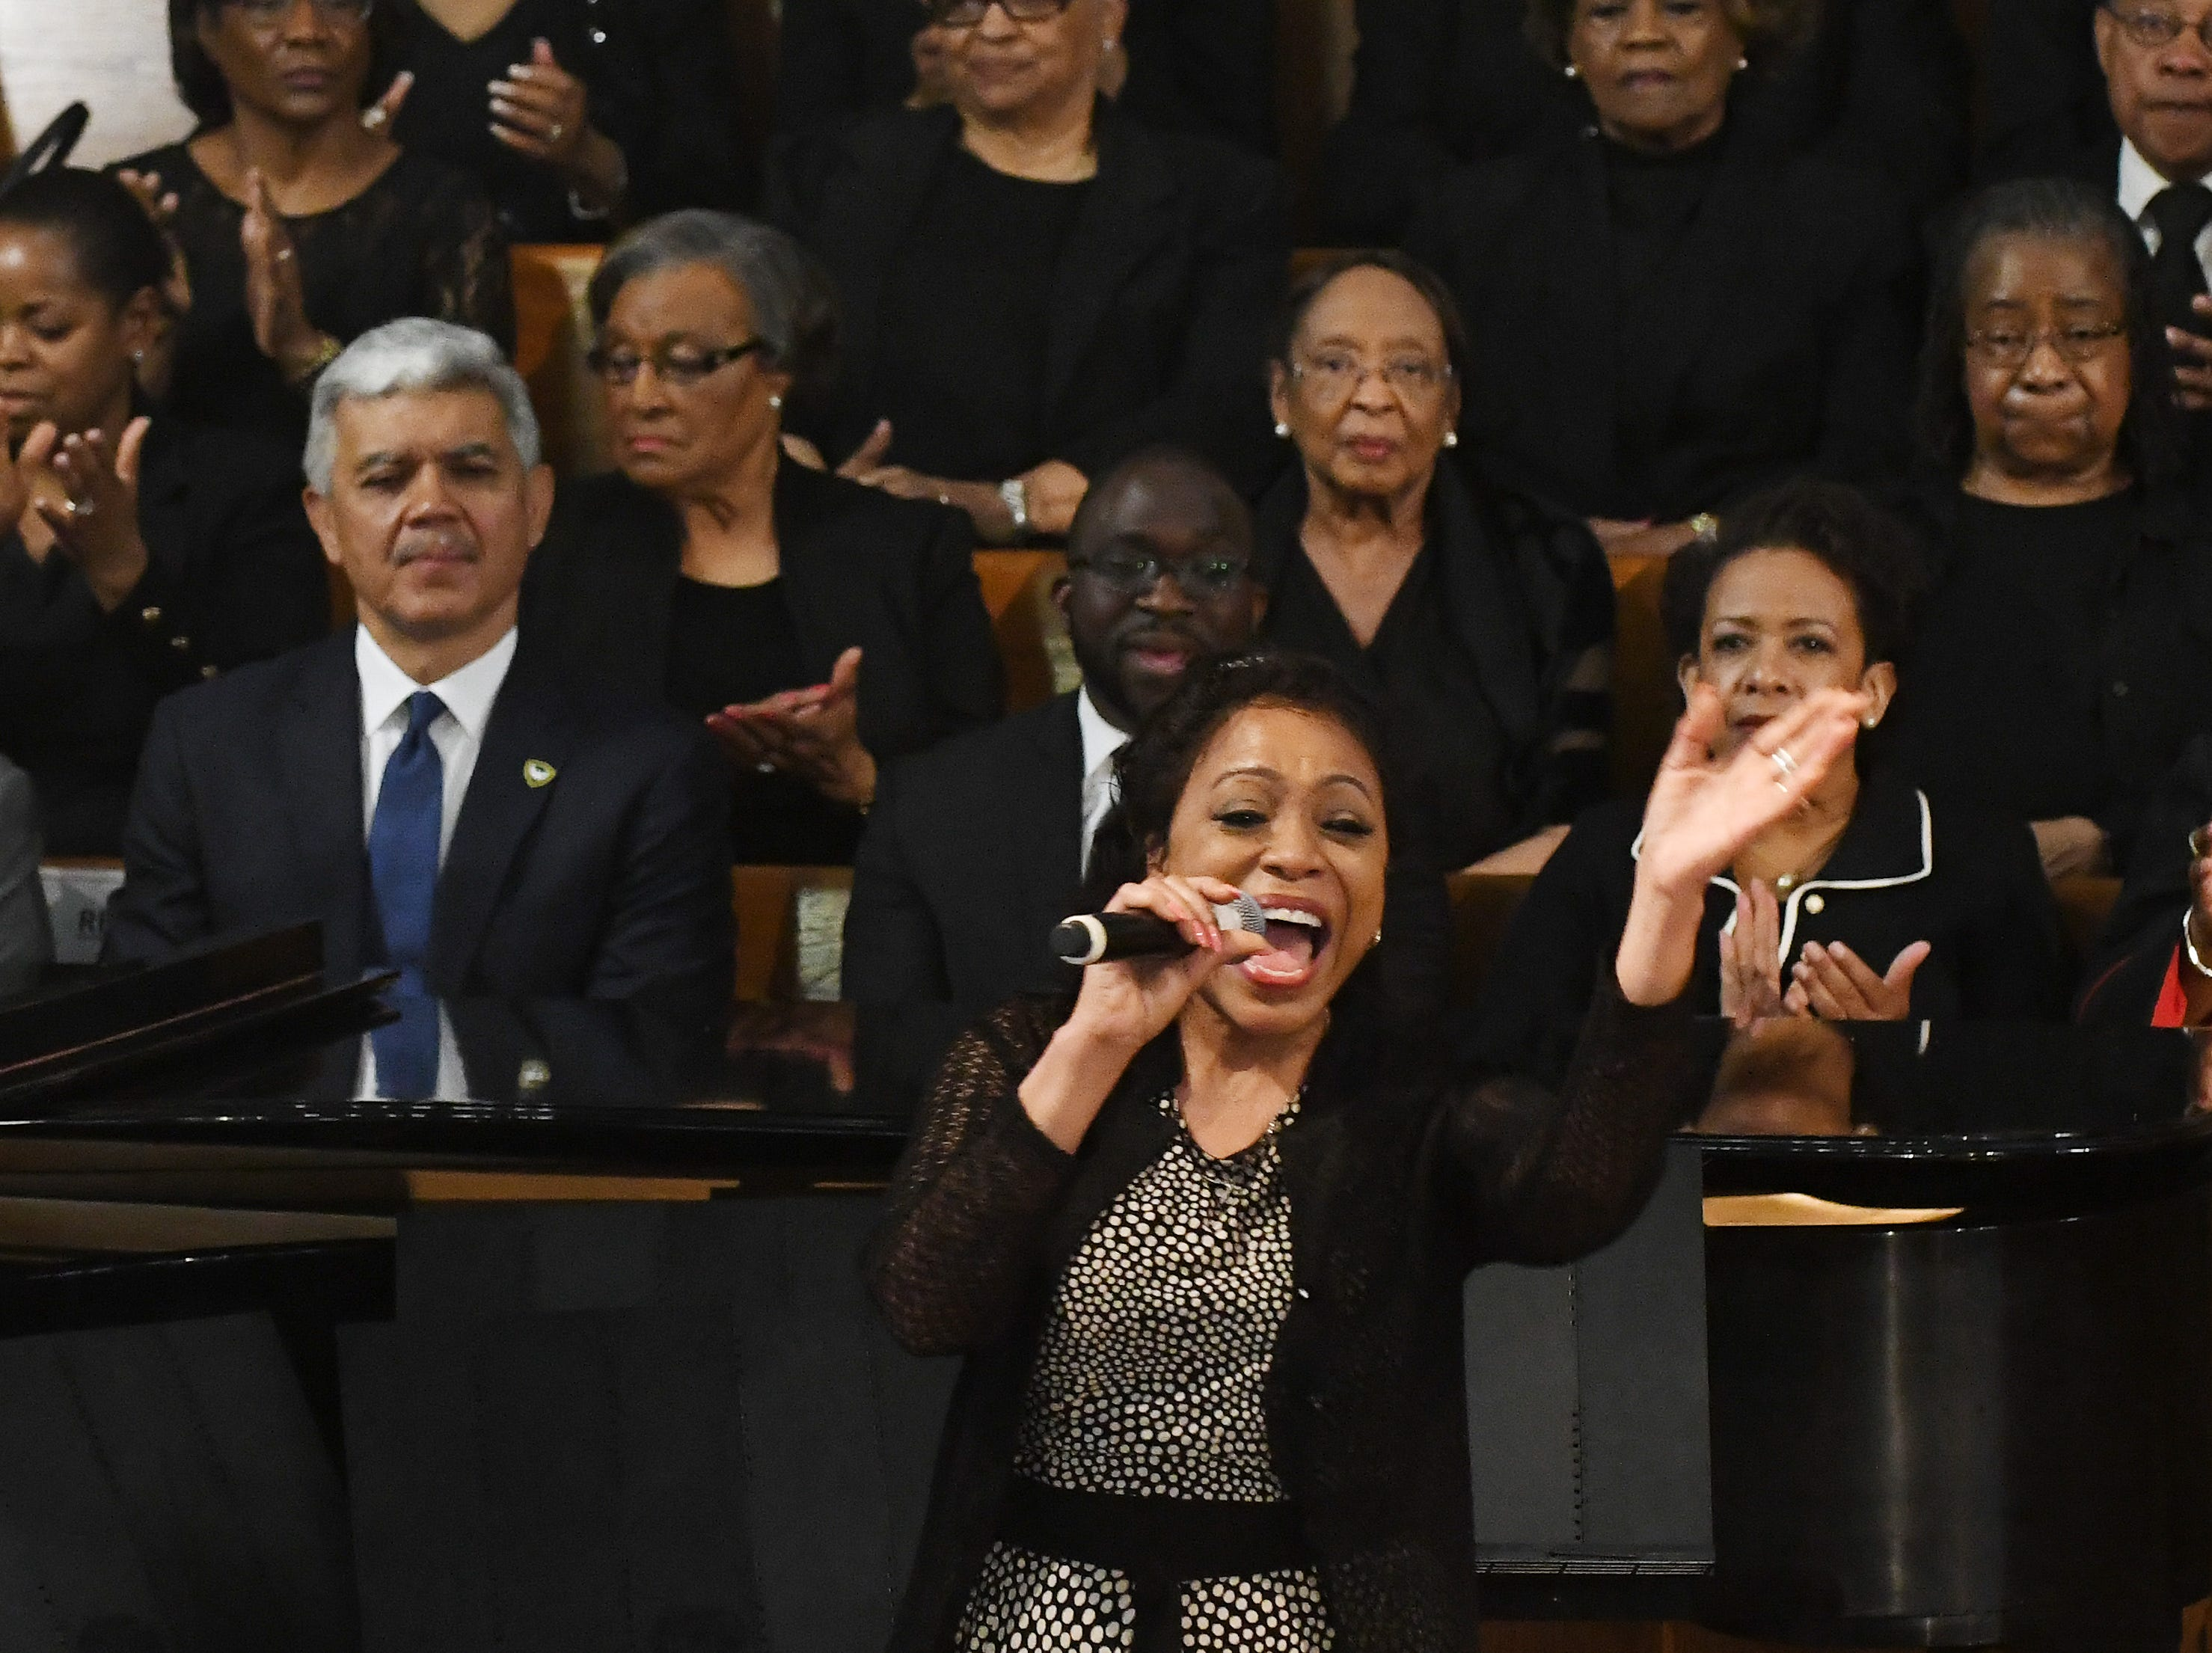 Singer Denise Stubbs performs during the funeral of Judge Keith.